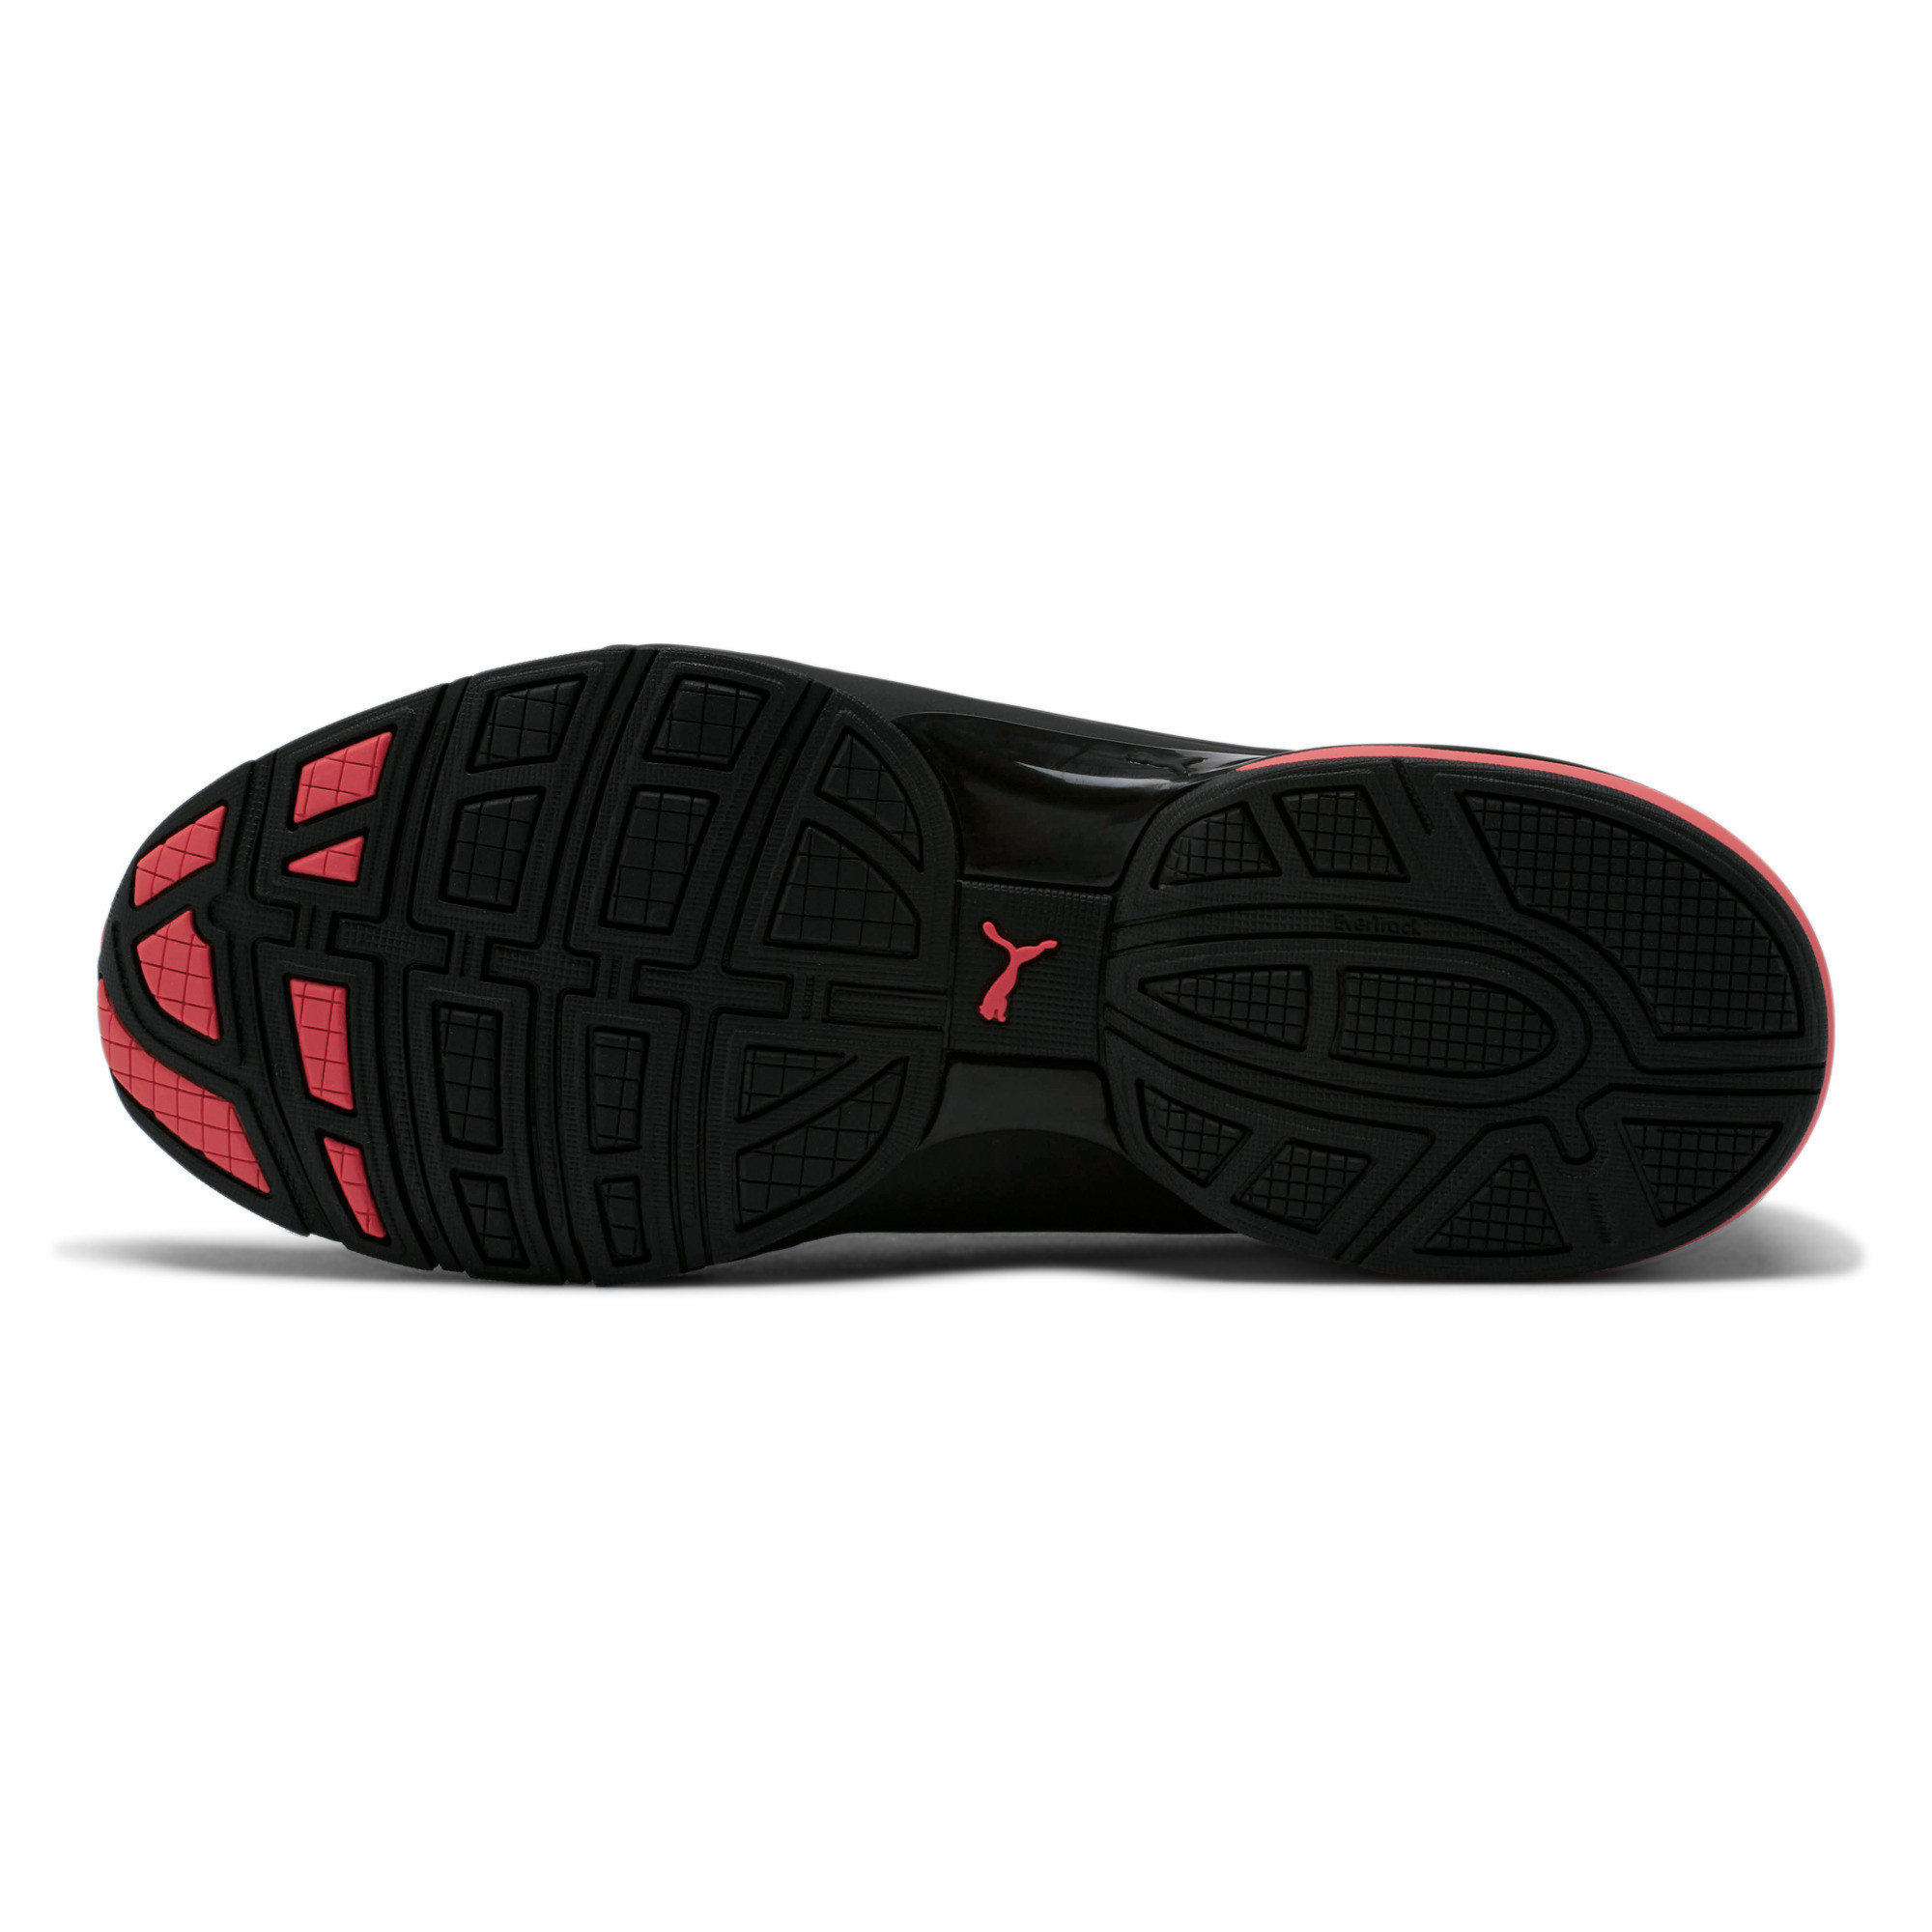 PUMA-Viz-Runner-Men-s-Running-Shoes-Men-Shoe-Running thumbnail 5